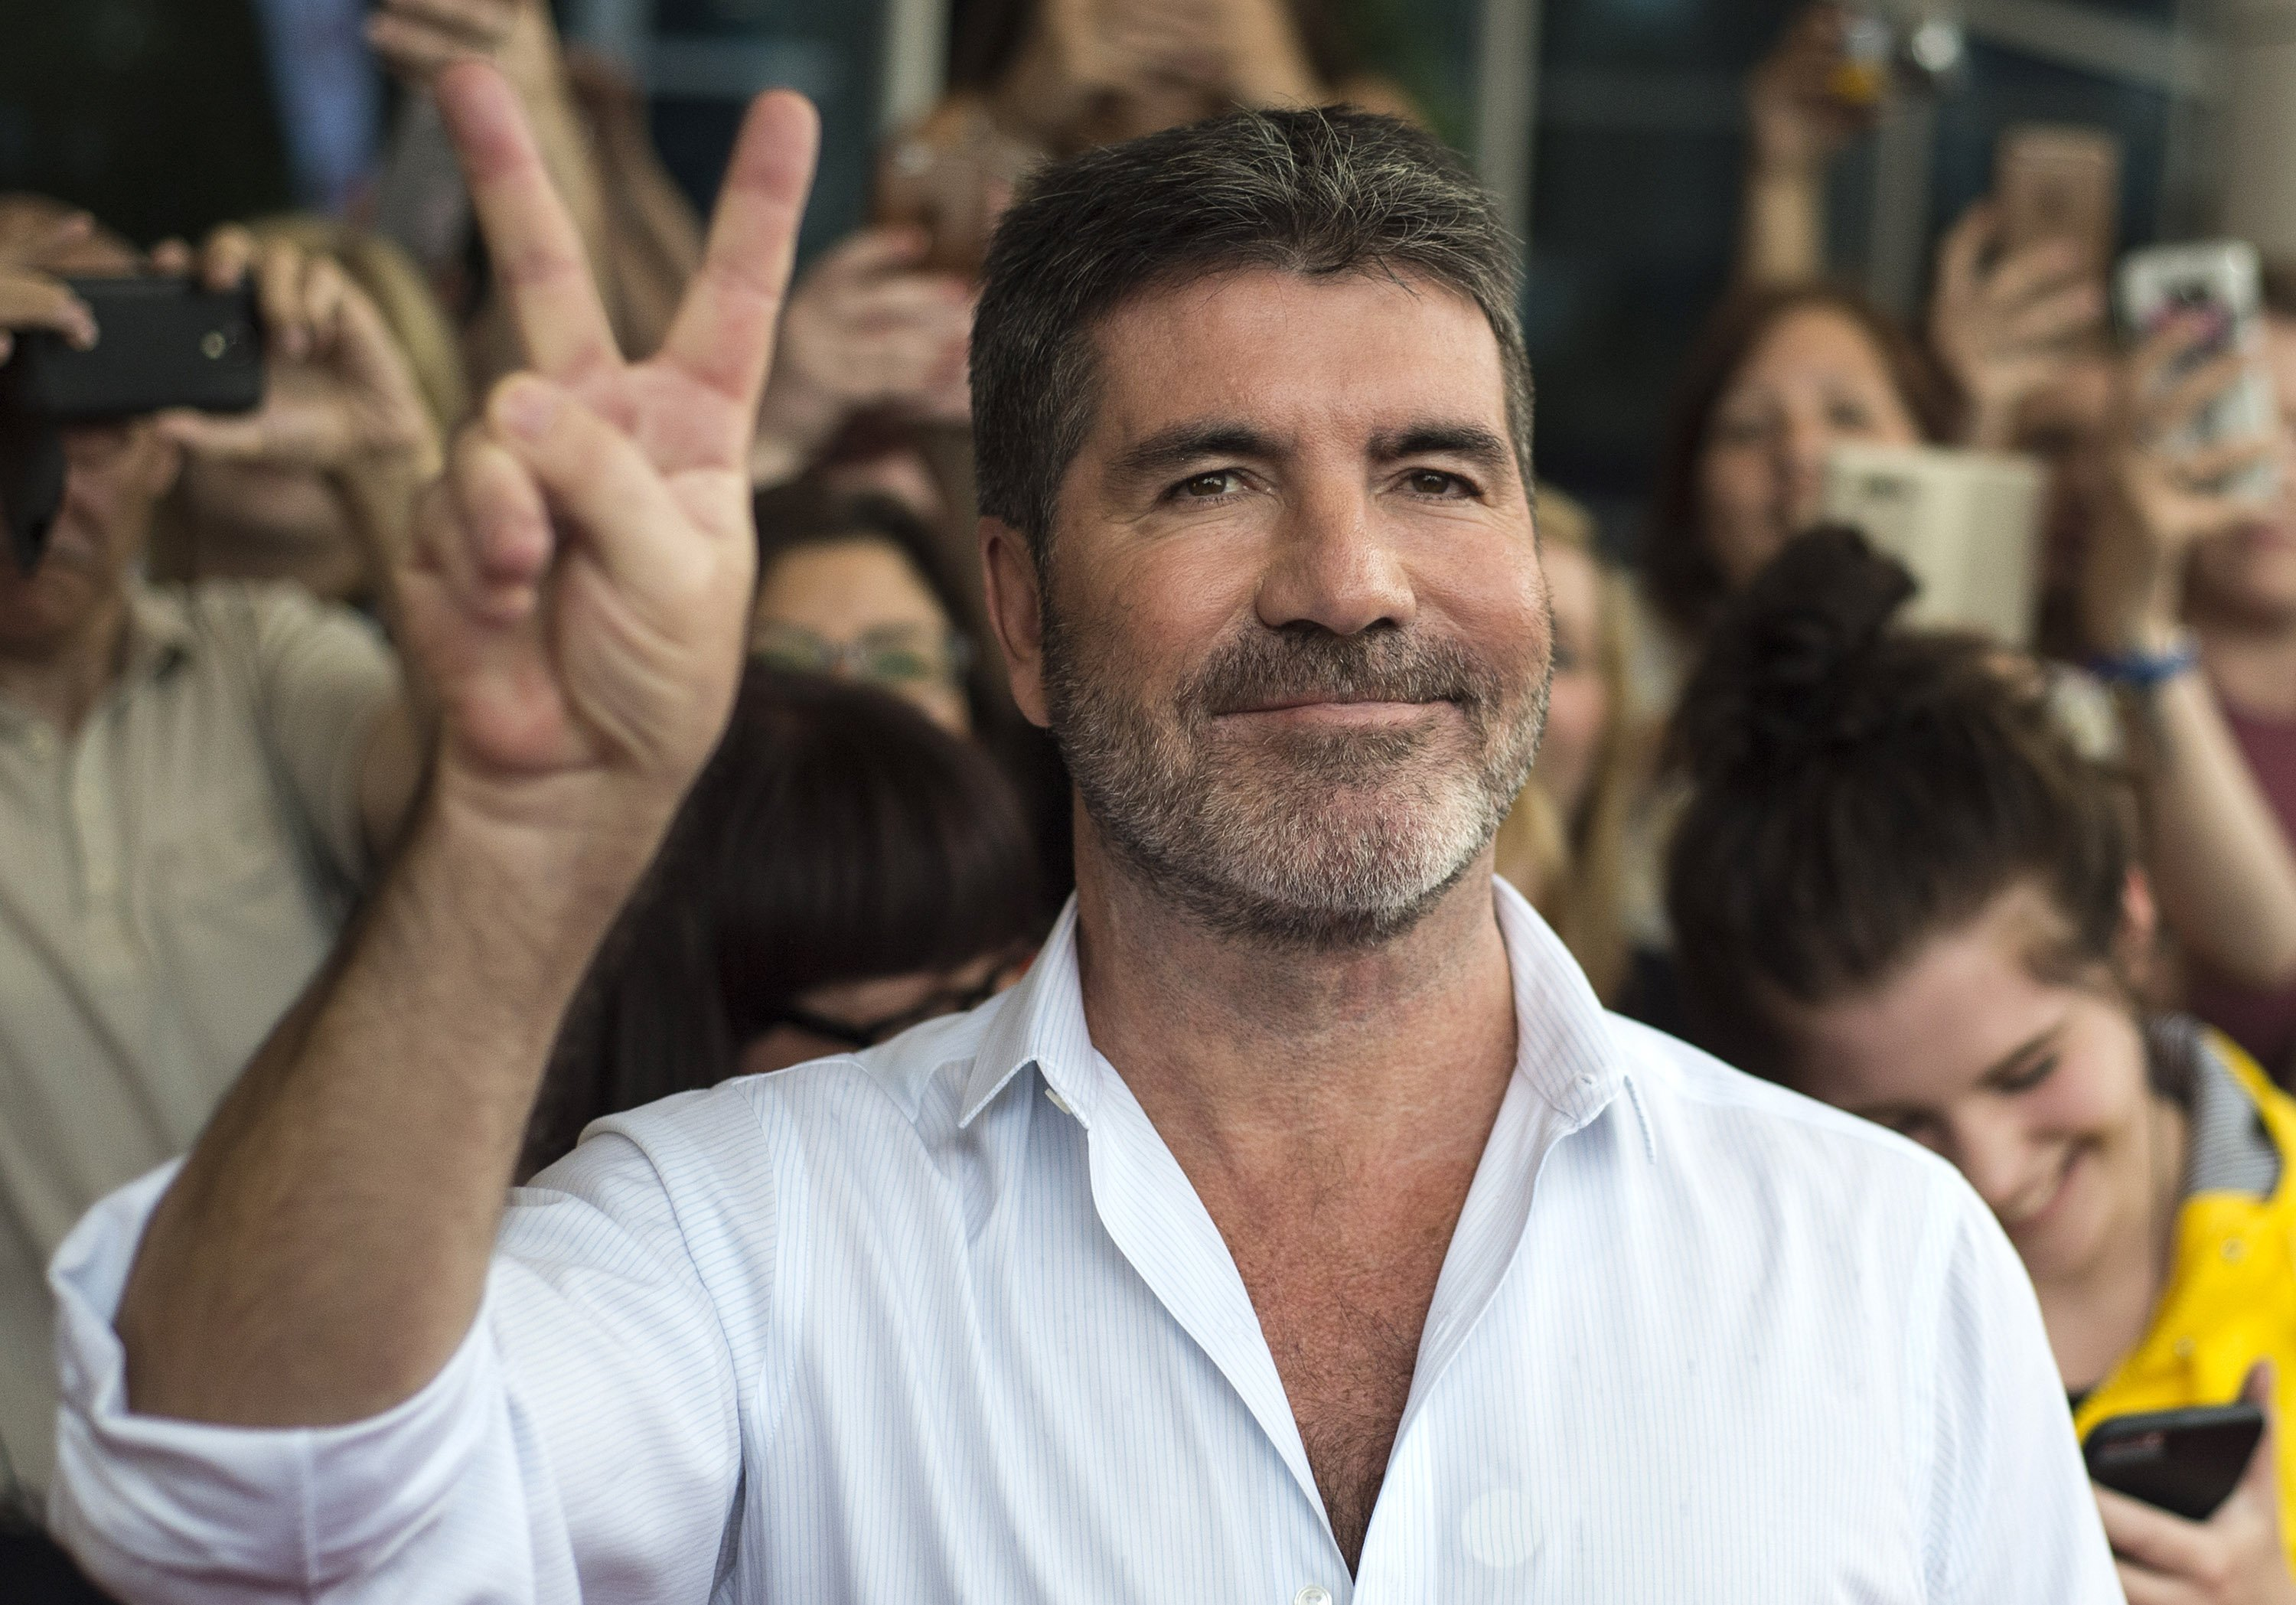 Simon Cowell arrives for X Factor auditions in Leicester, UK on June 10, 2016 | Photo: Getty Images